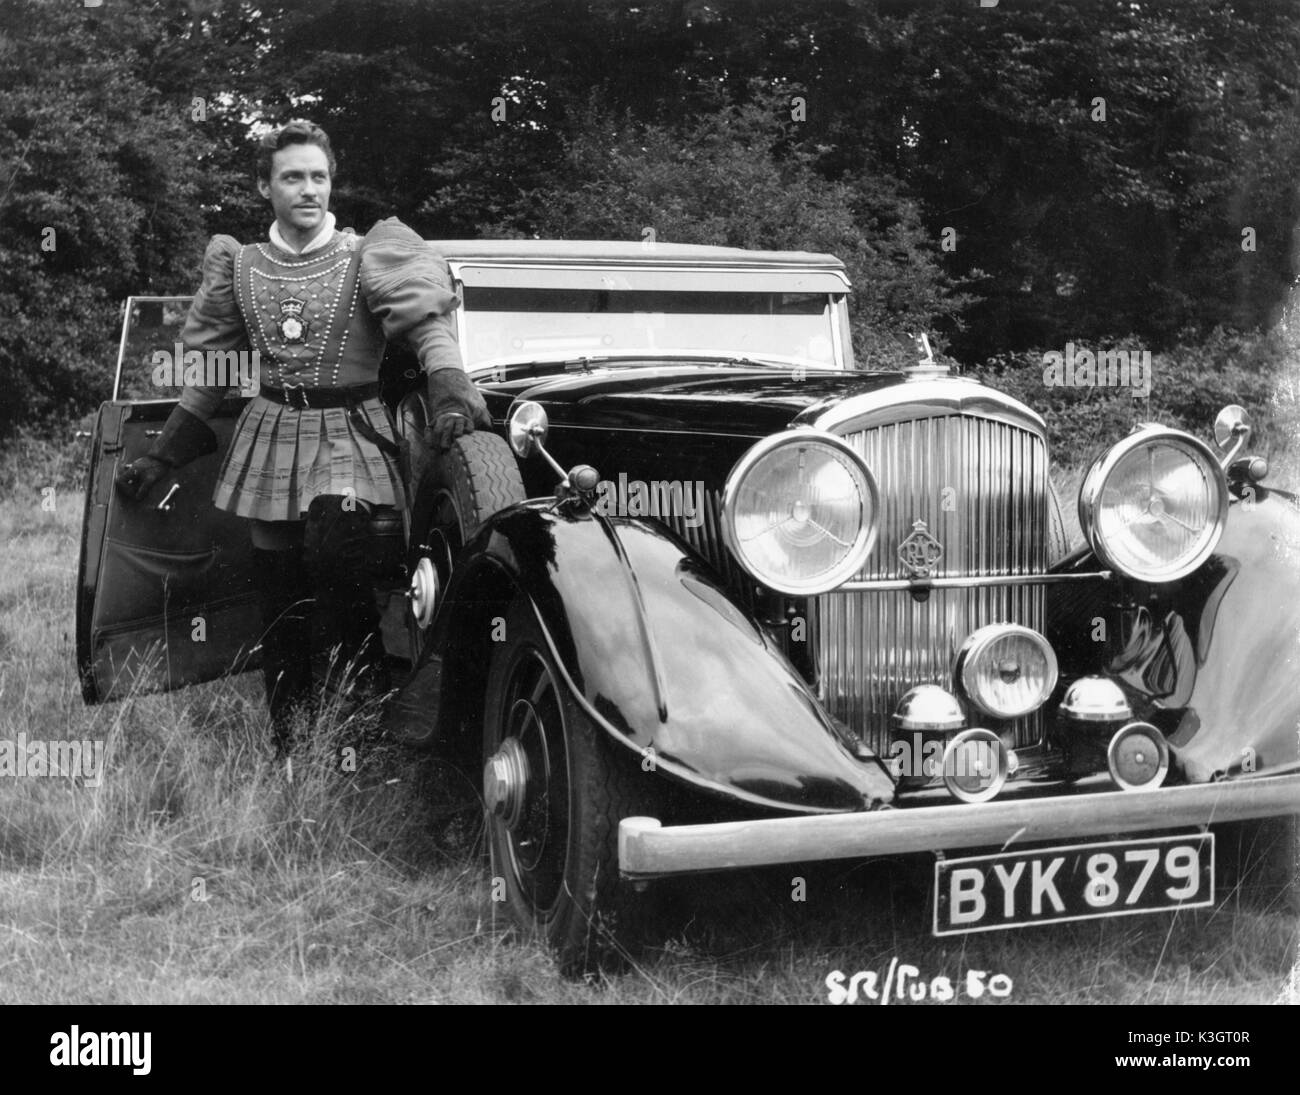 RICHARD TODD WITH HIS BENTLEY DURING THE FILMING OF THE SWORD AND ...